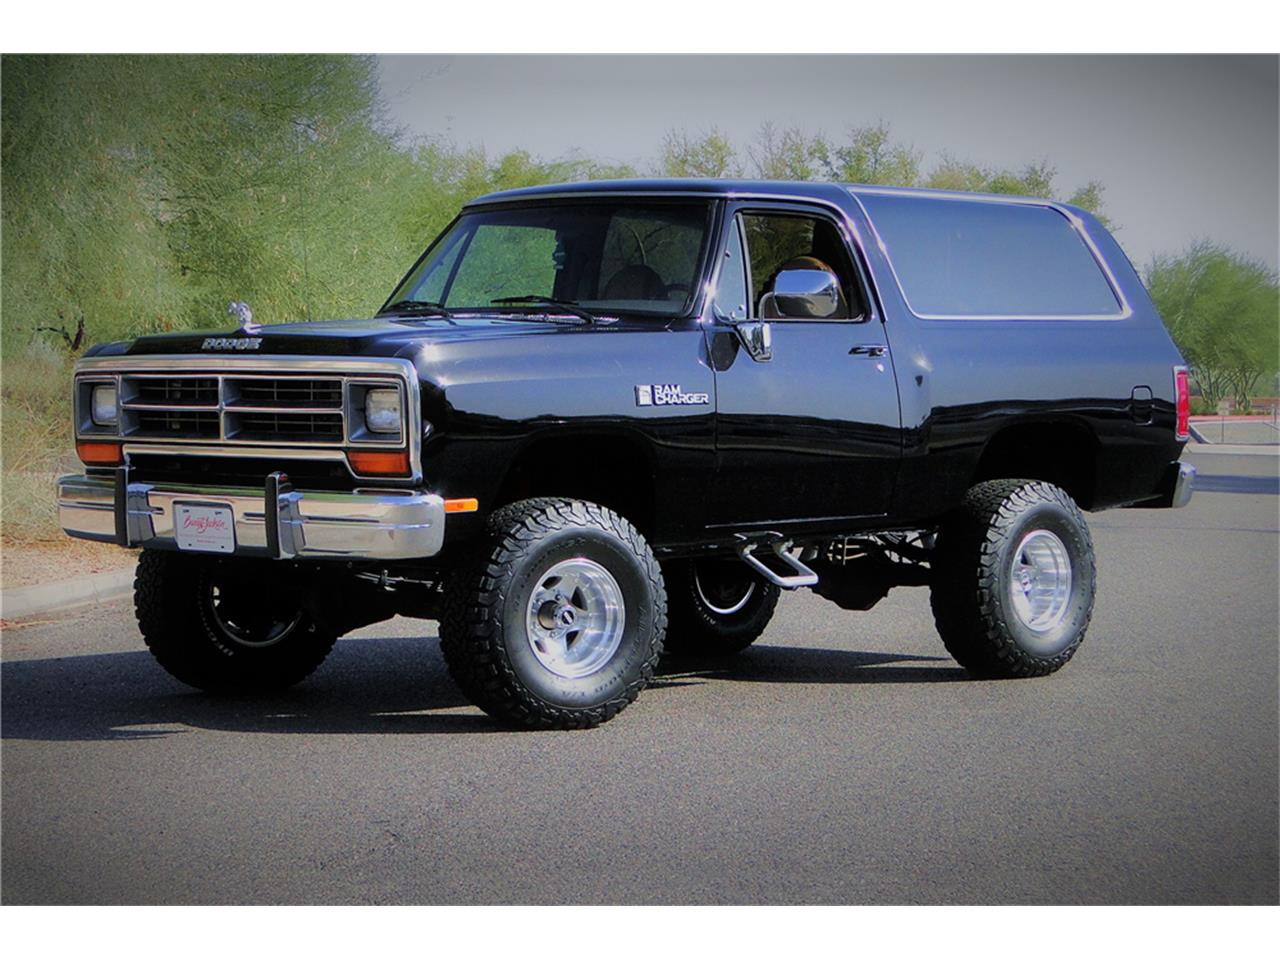 1988 Dodge Ramcharger For Sale Classiccars Com Cc 1137995